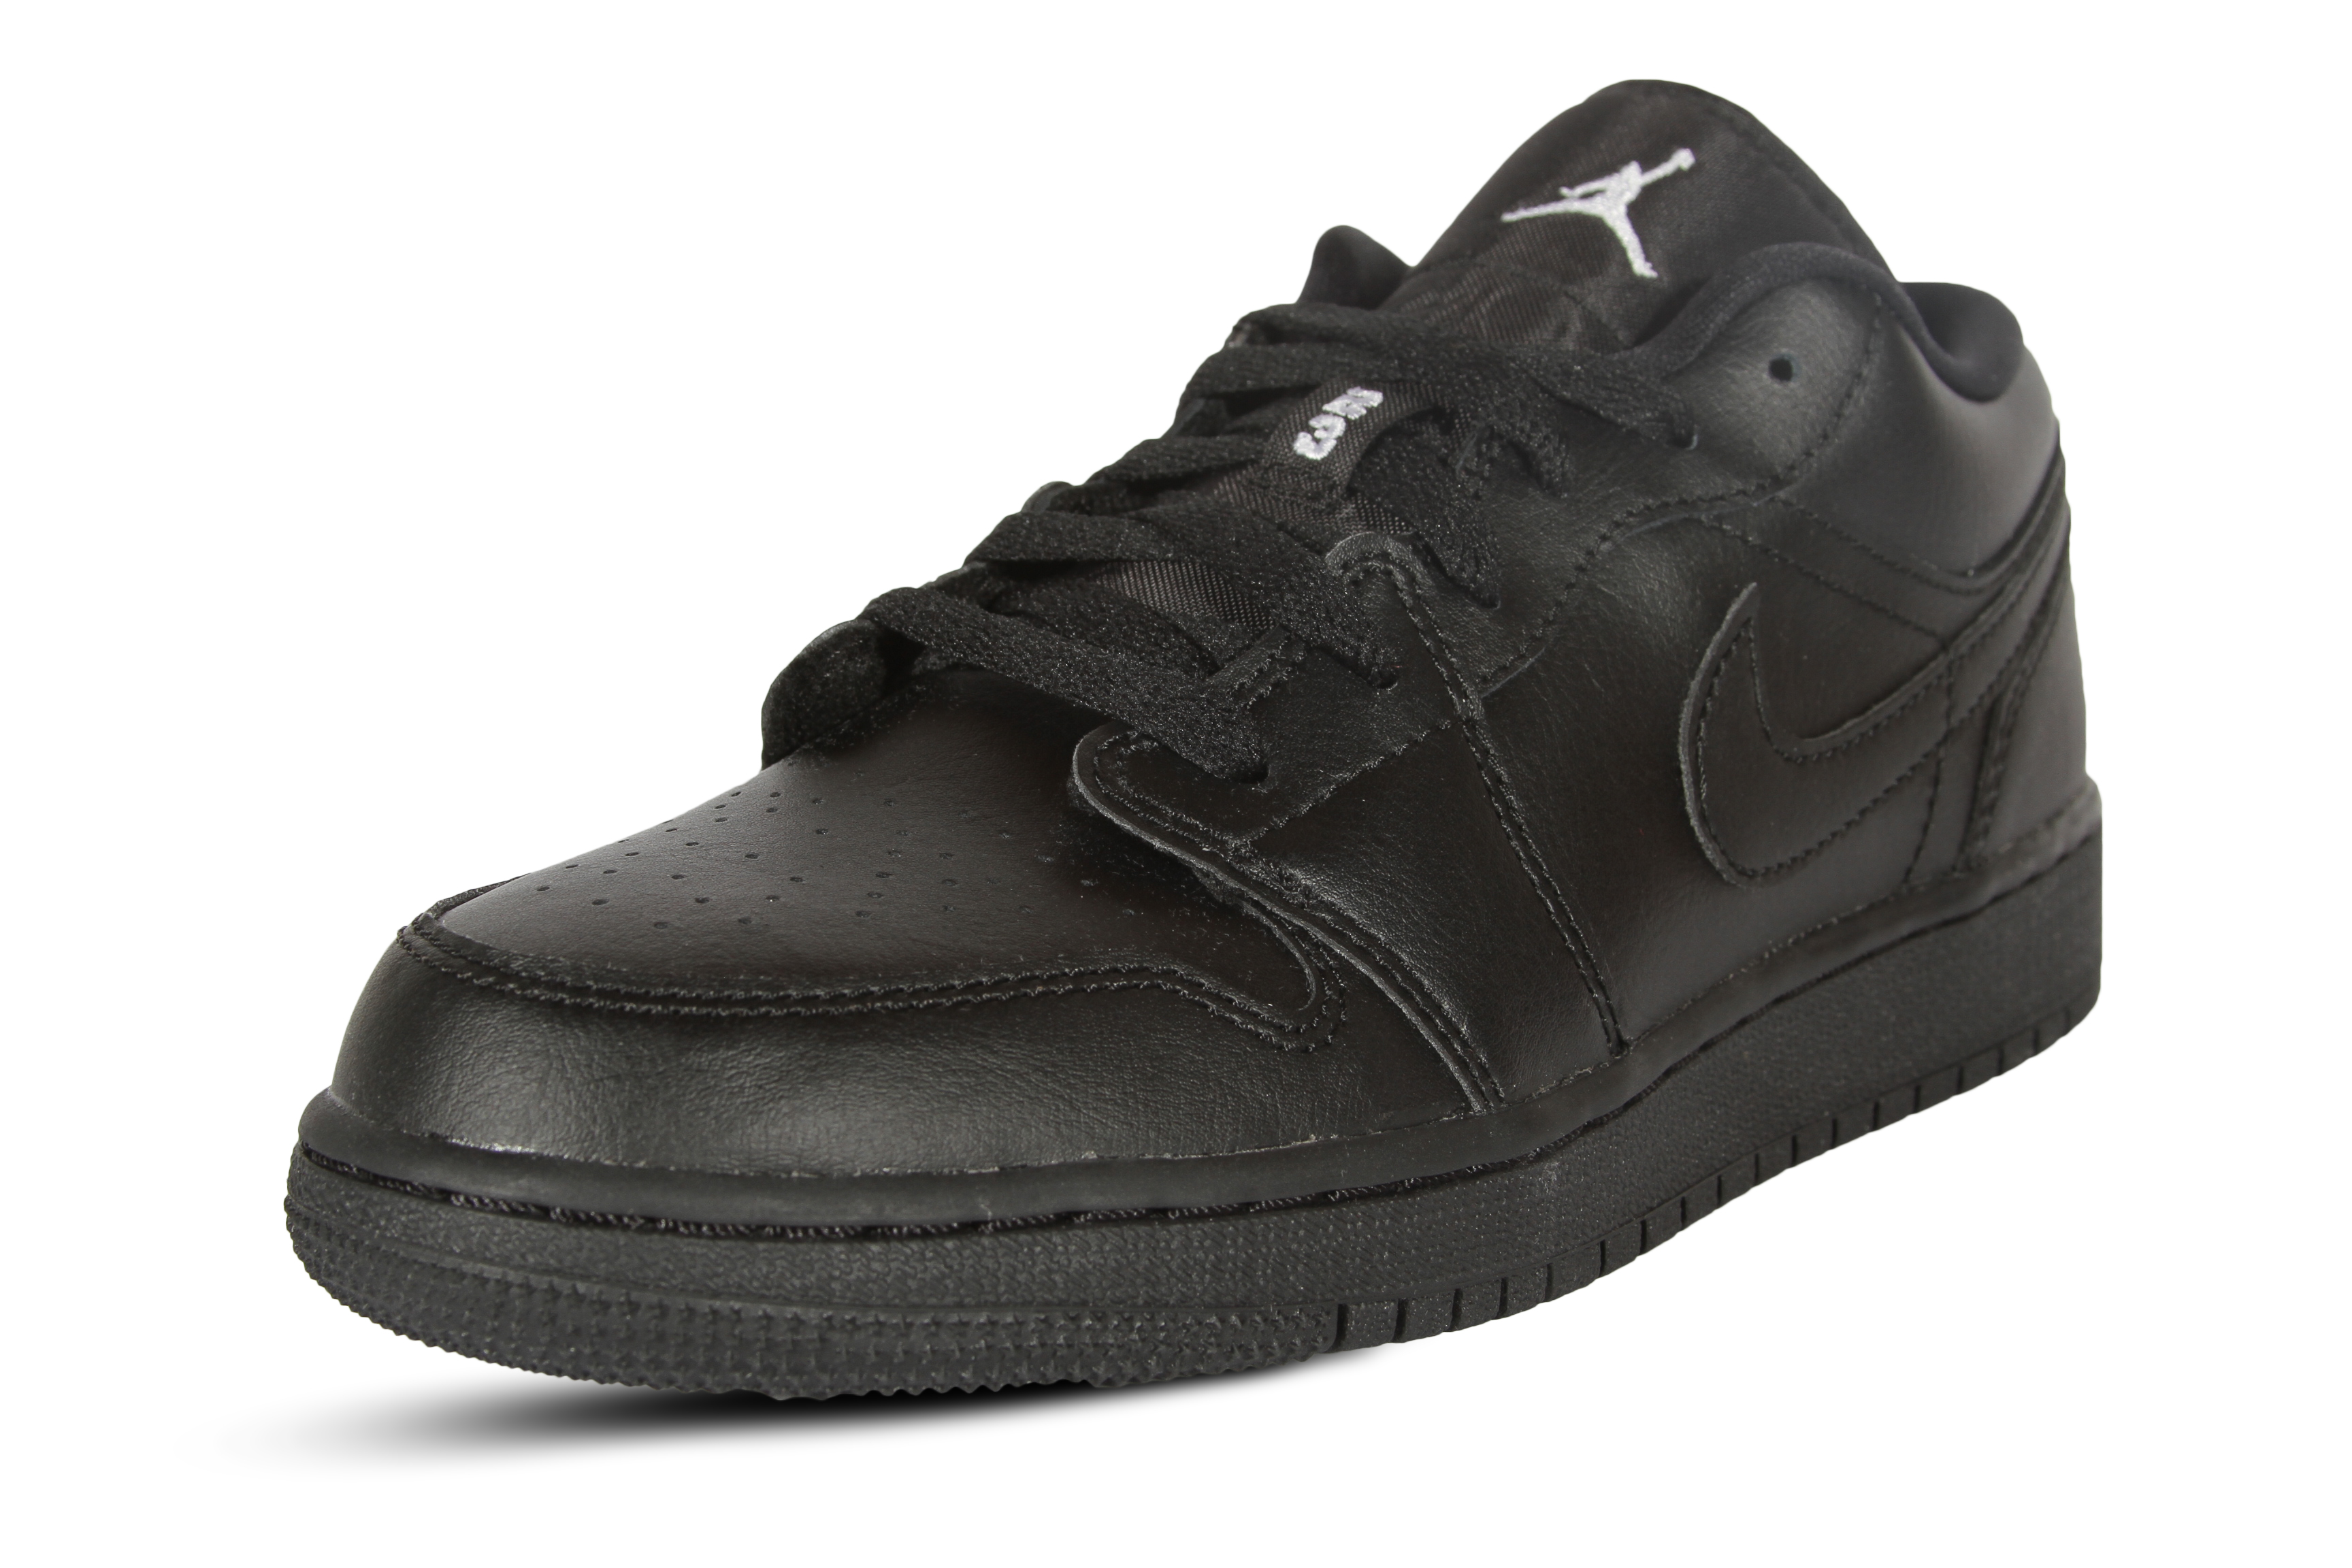 Air Jordan 1 Low BG Boy s Grade School (big Kids) Shoes 553560-006 6y.  About this product. Picture 1 of 6 ... 61f0f80b4